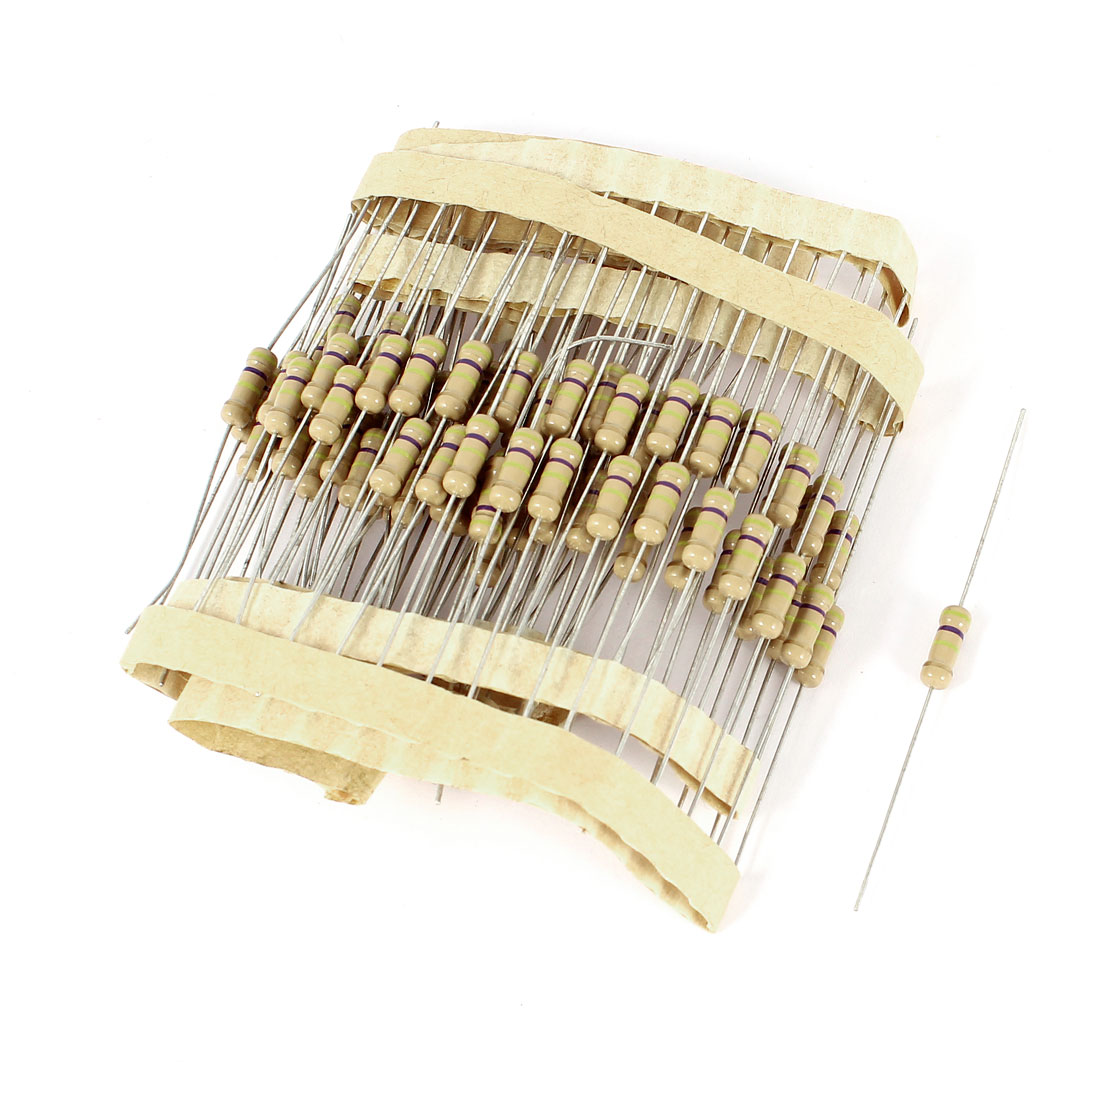 95 Pcs 1/2W 470K Ohm 5% Tolerance Axial Lead Colored Ring Carbon Film Resistors